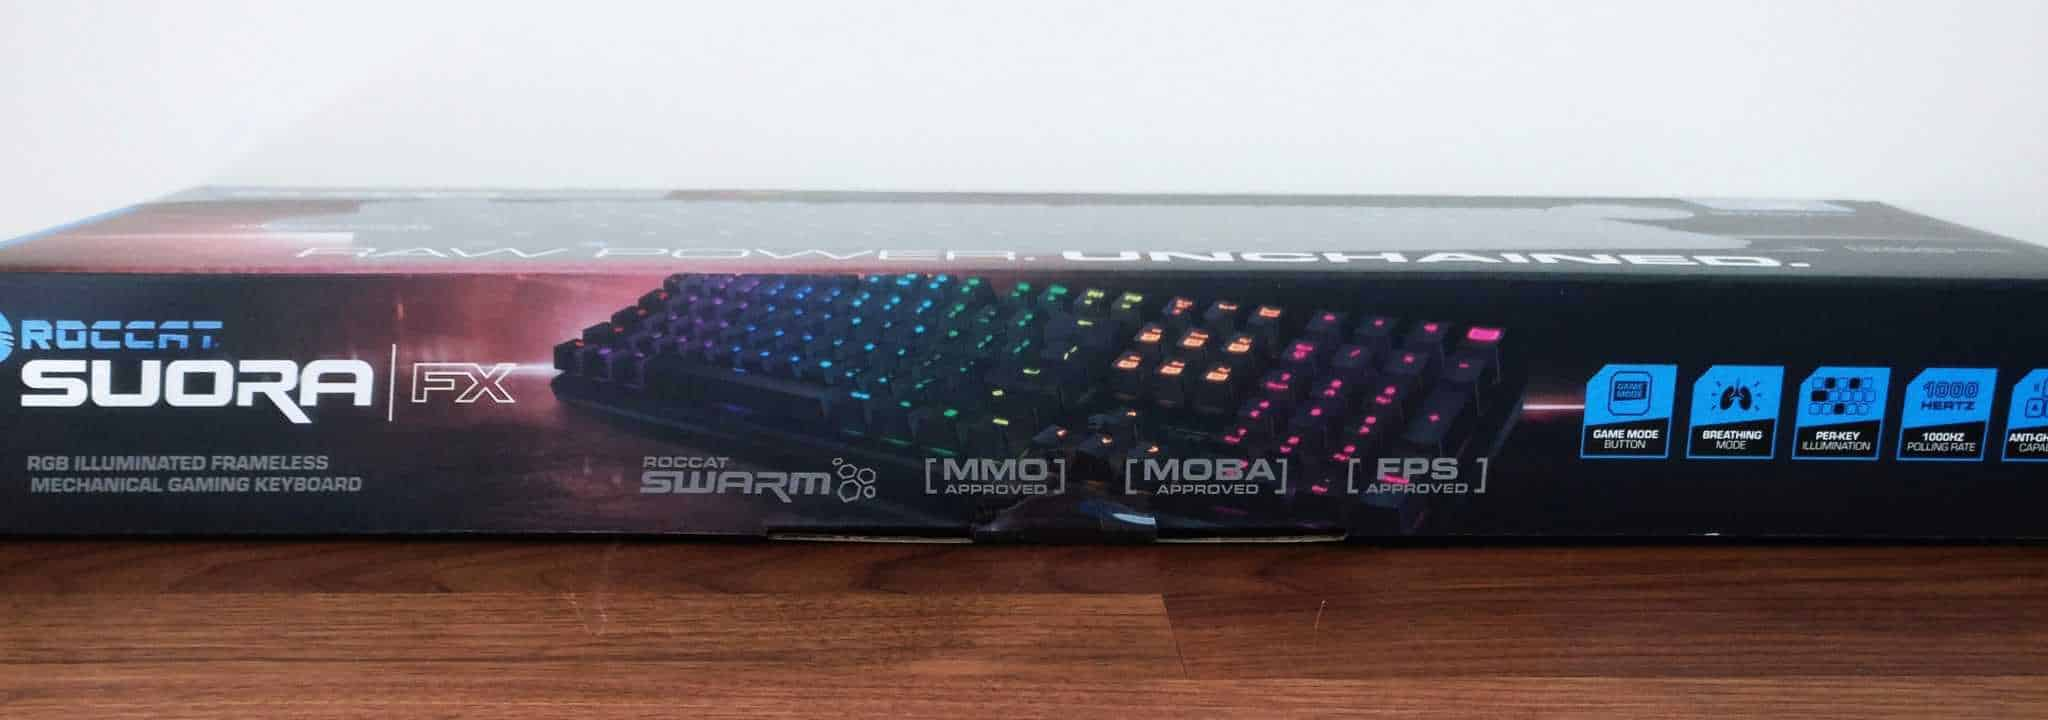 Roccat-suoara-screens-1 Roccat Suora FX RGB Mechanical Gaming Keyboard Review